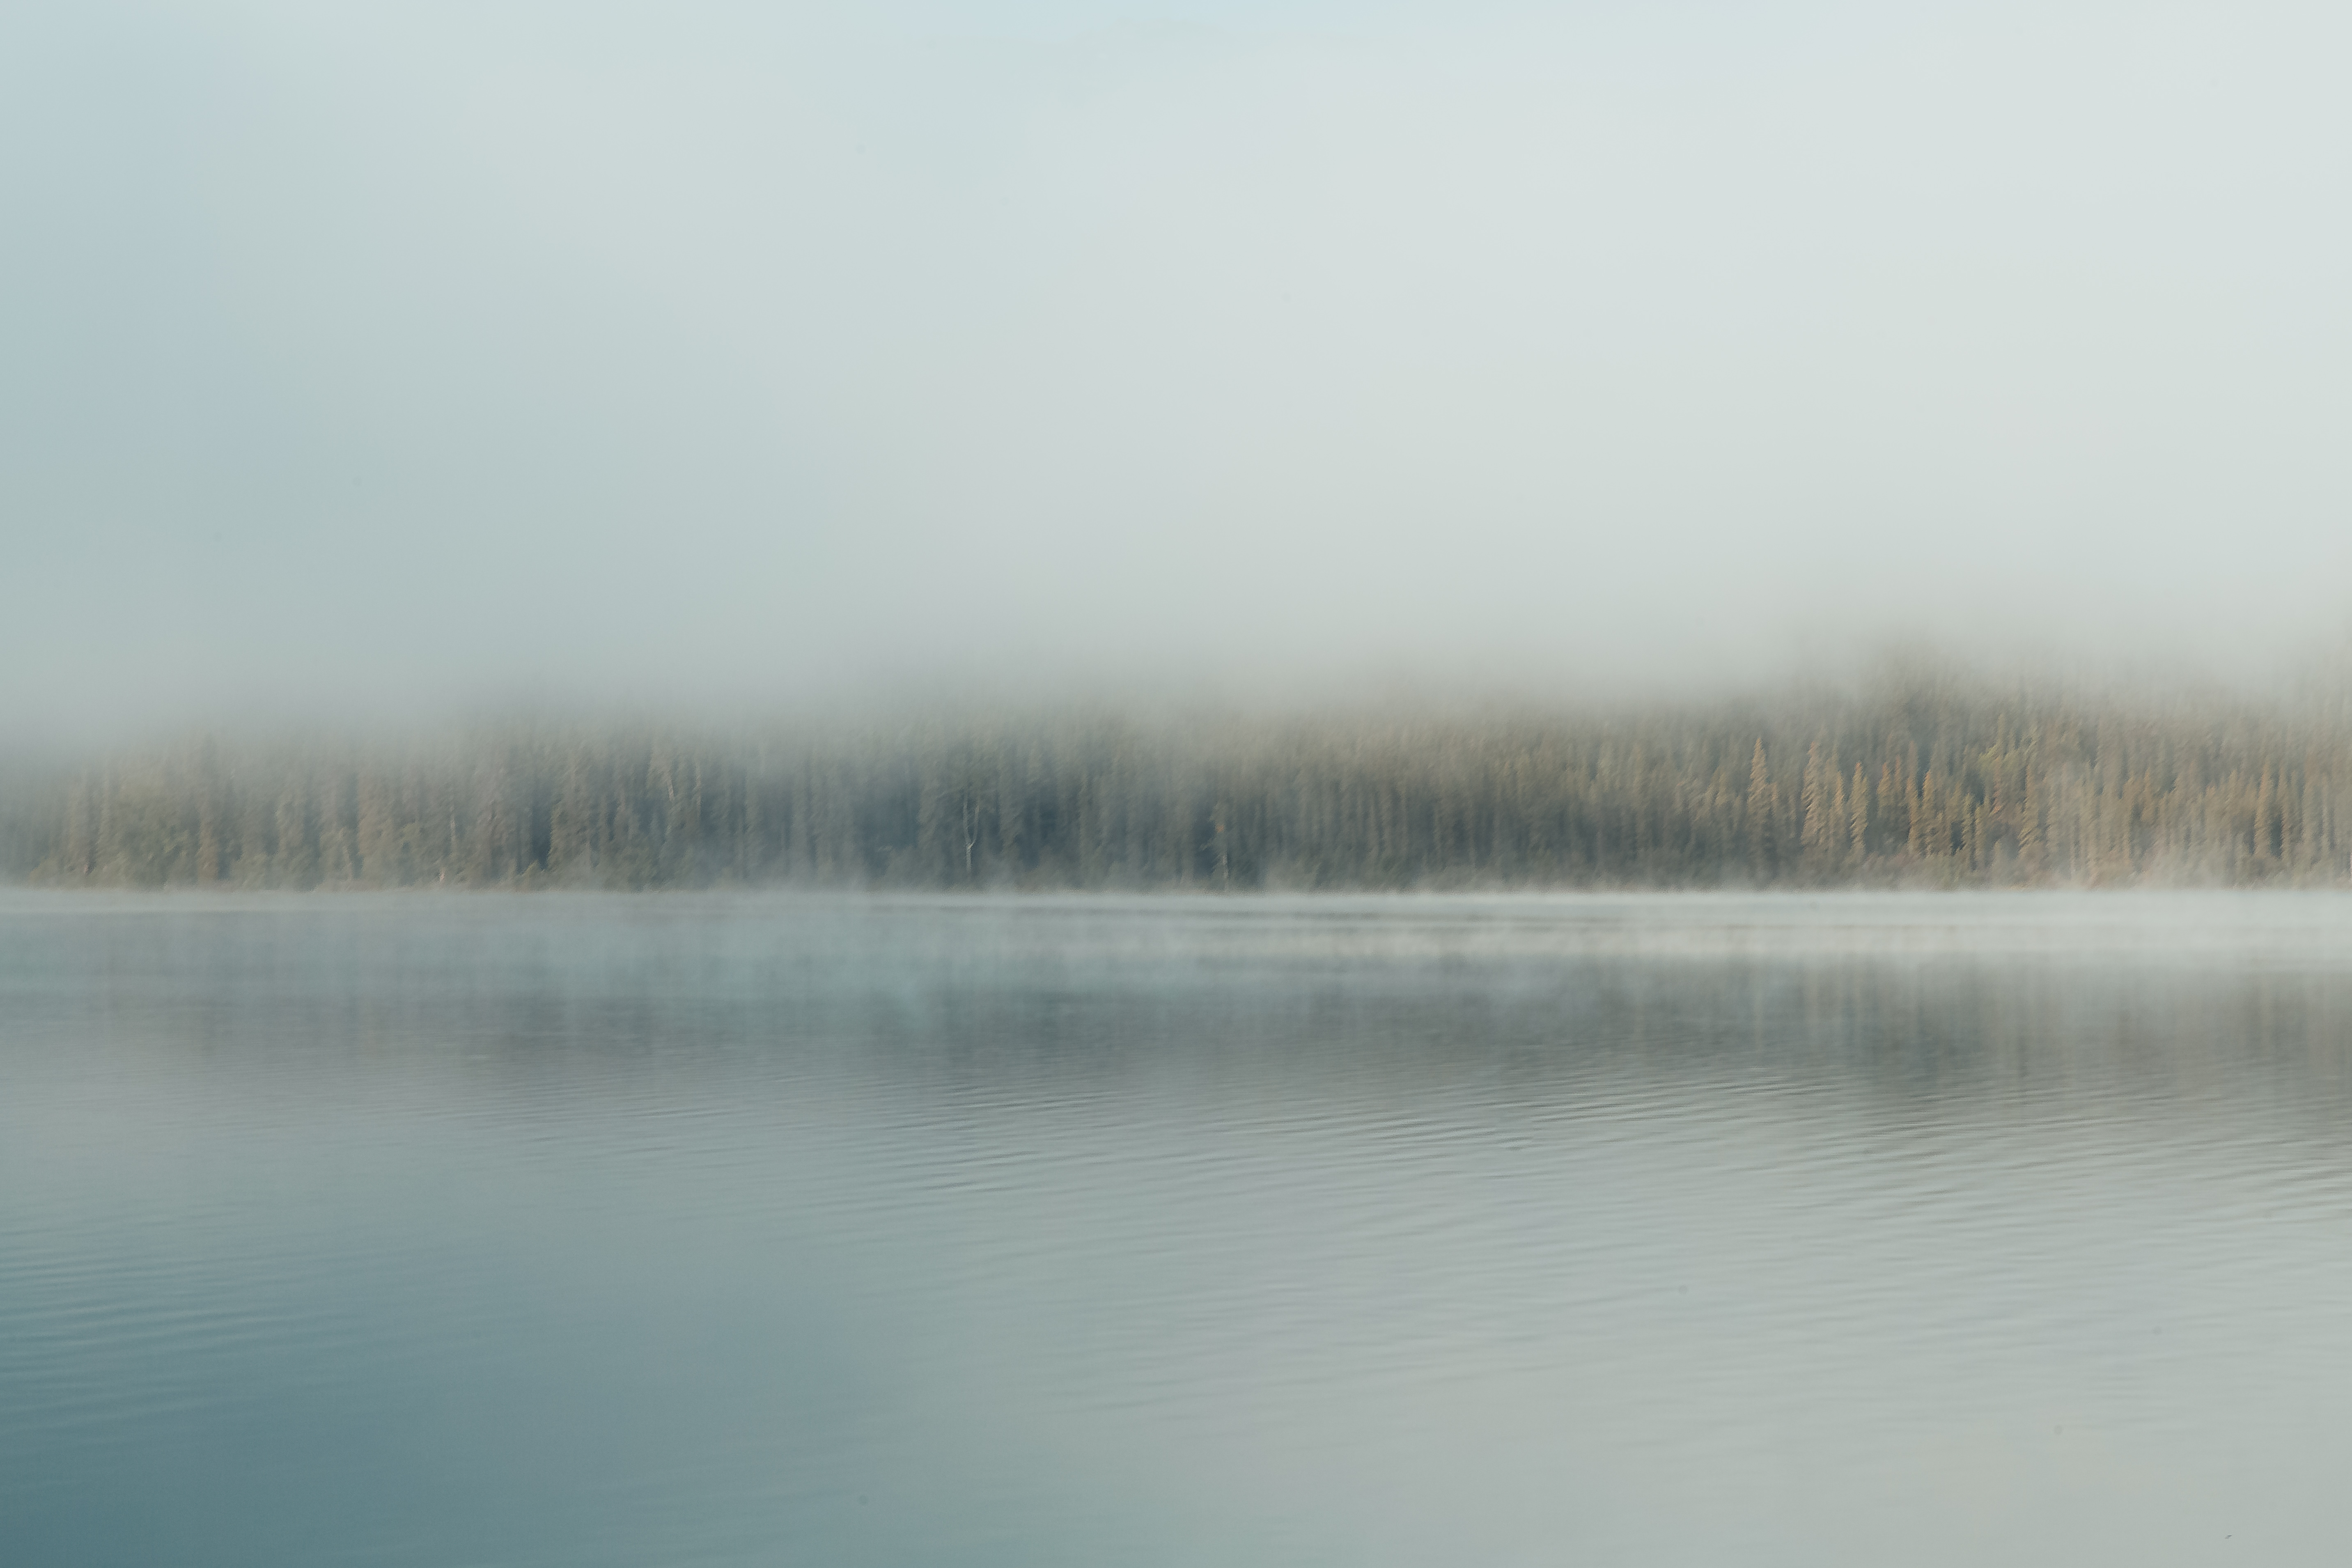 A misty landscape photo of a lake in BC in the morning